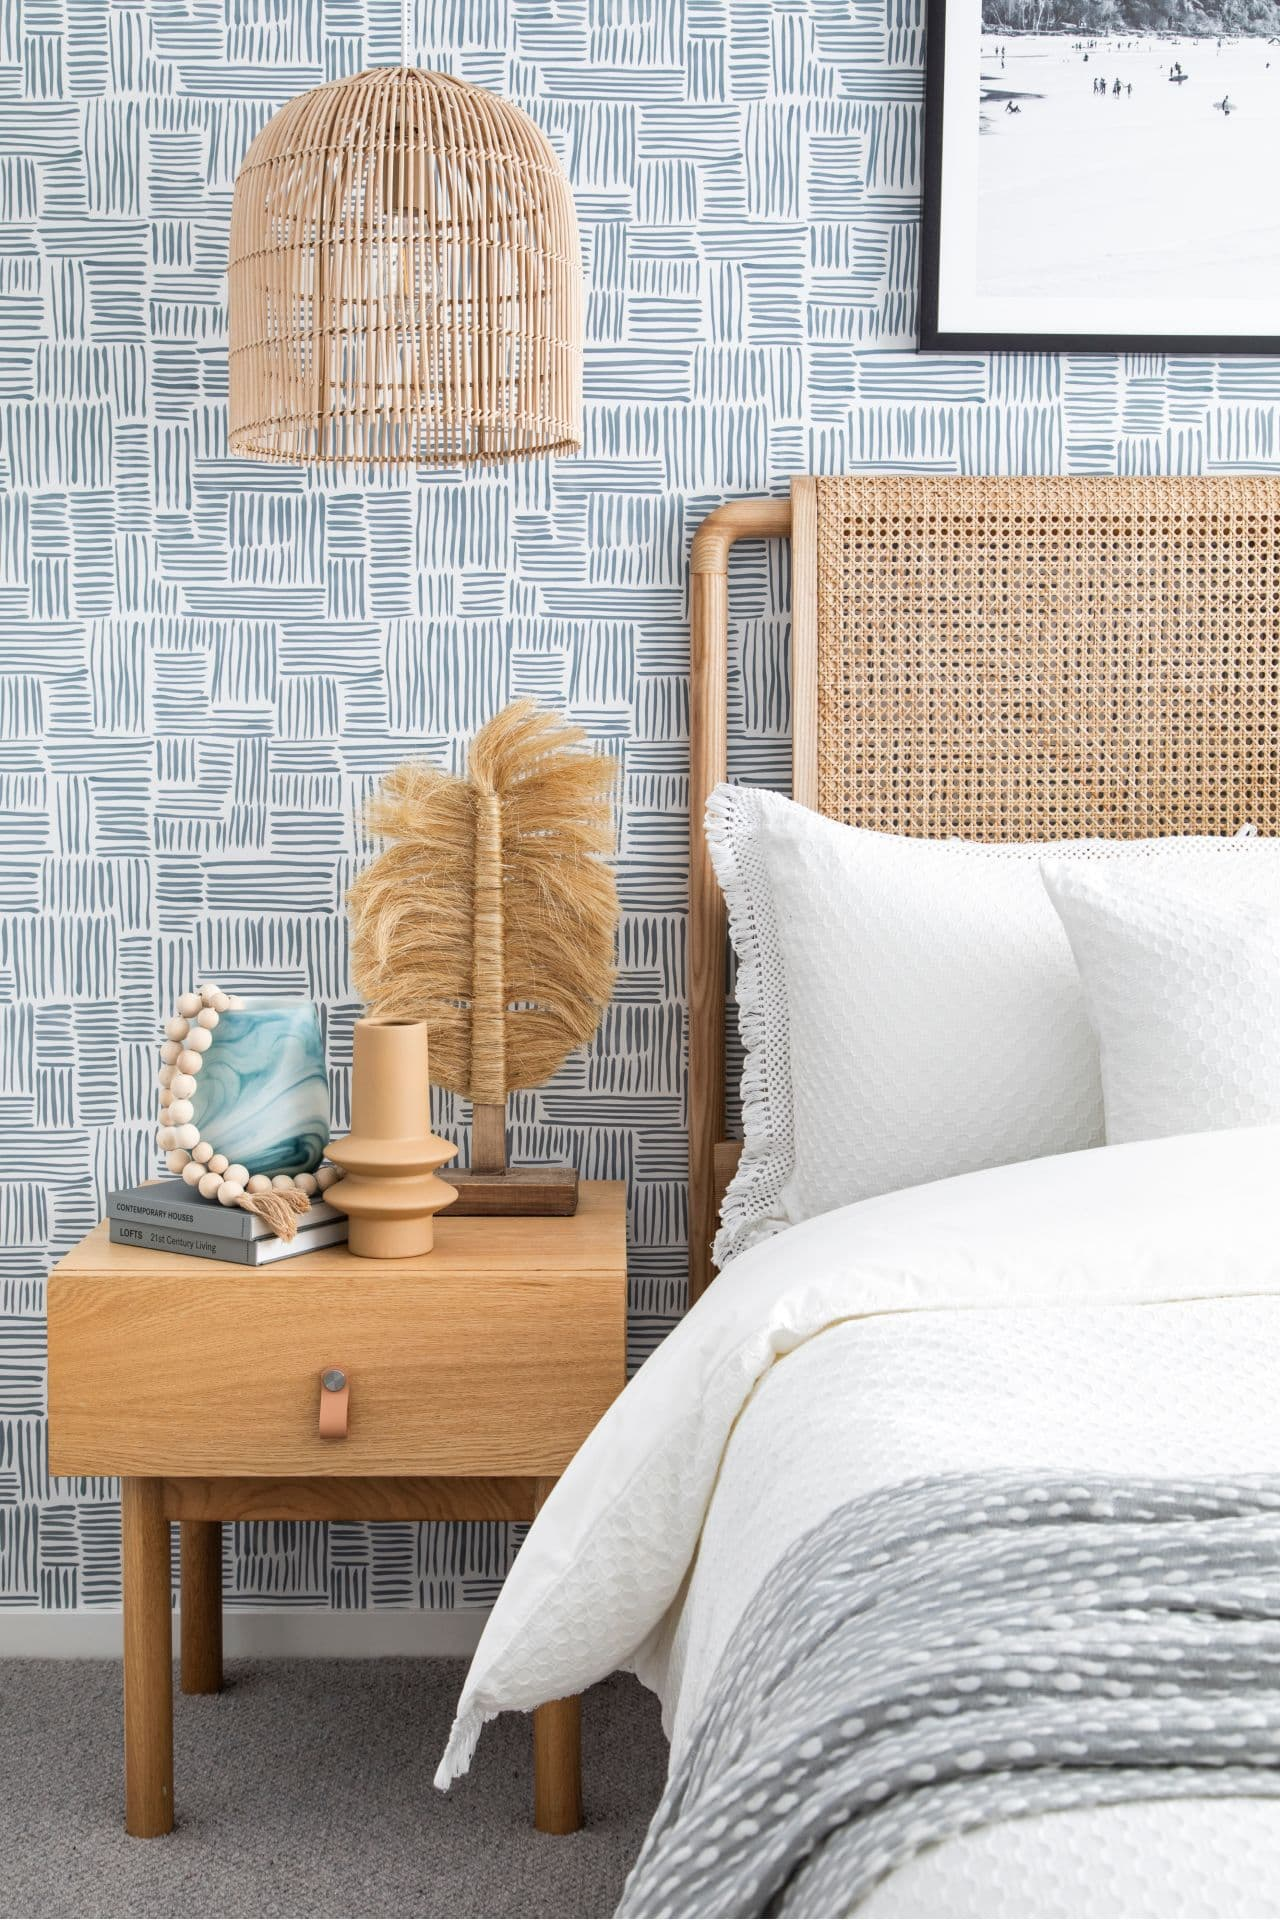 coastal bedroom with rattan headboard and pendant light and white bedding with grey throw